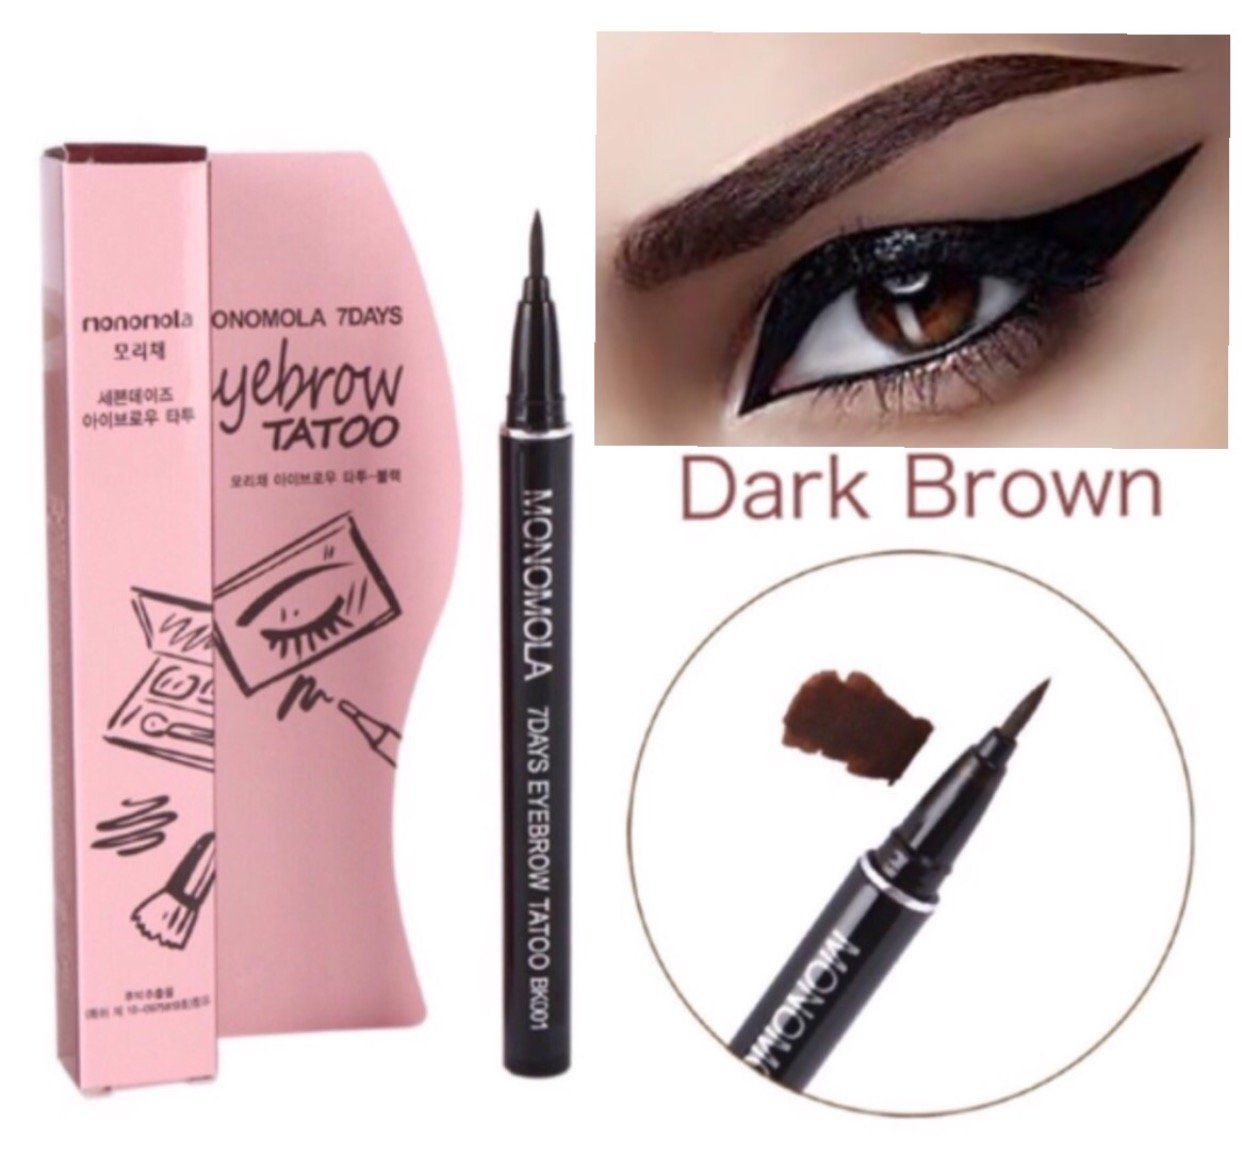 Long Lasting Waterproof Eyebrow Tattoo Pen Pencil Liner